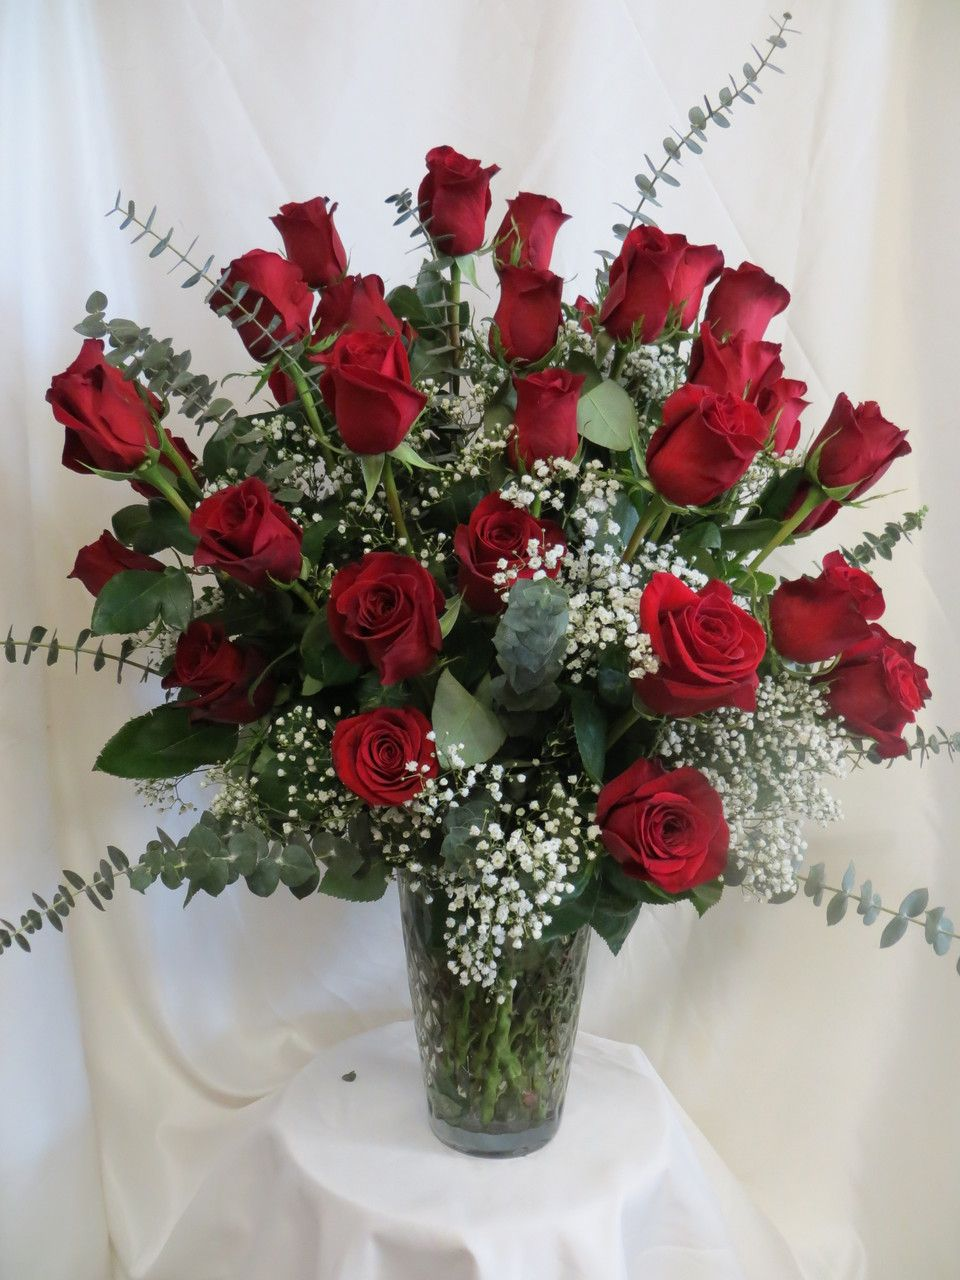 Ultimate Love 3 Dozen Red Roses (With images) Birthday